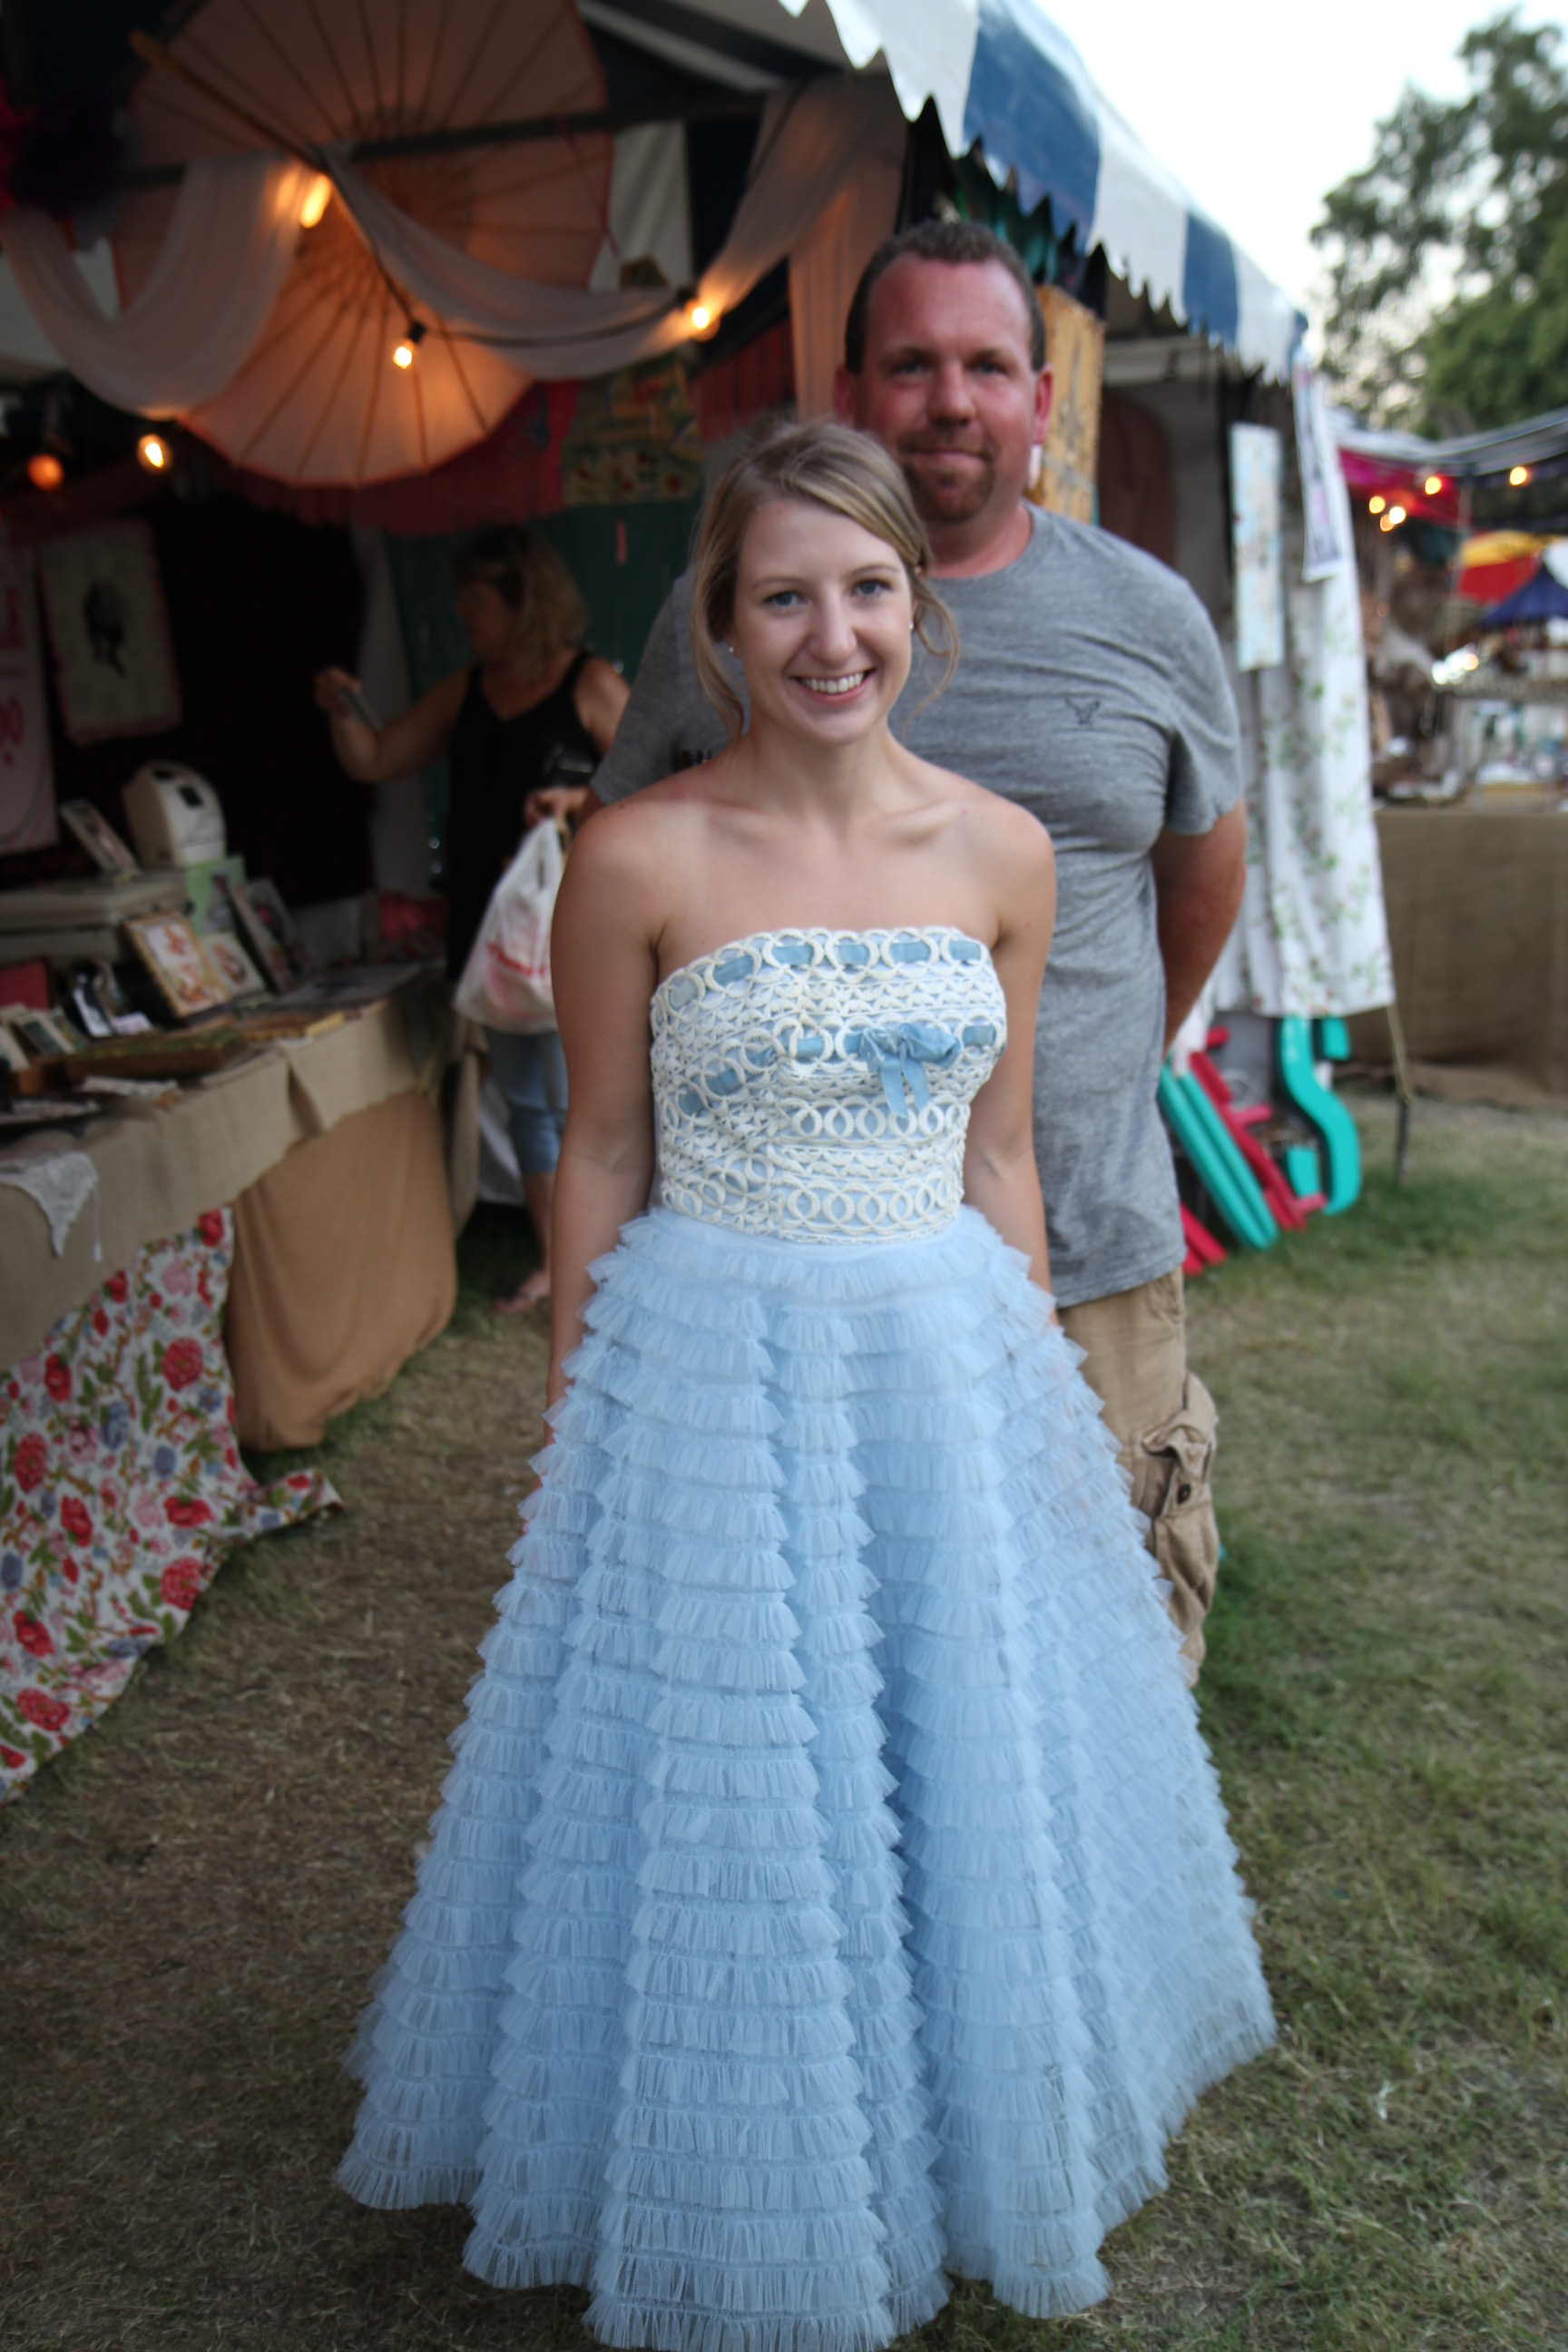 Outstanding Gypsy Prom Dress Images - Wedding Dress Ideas ...